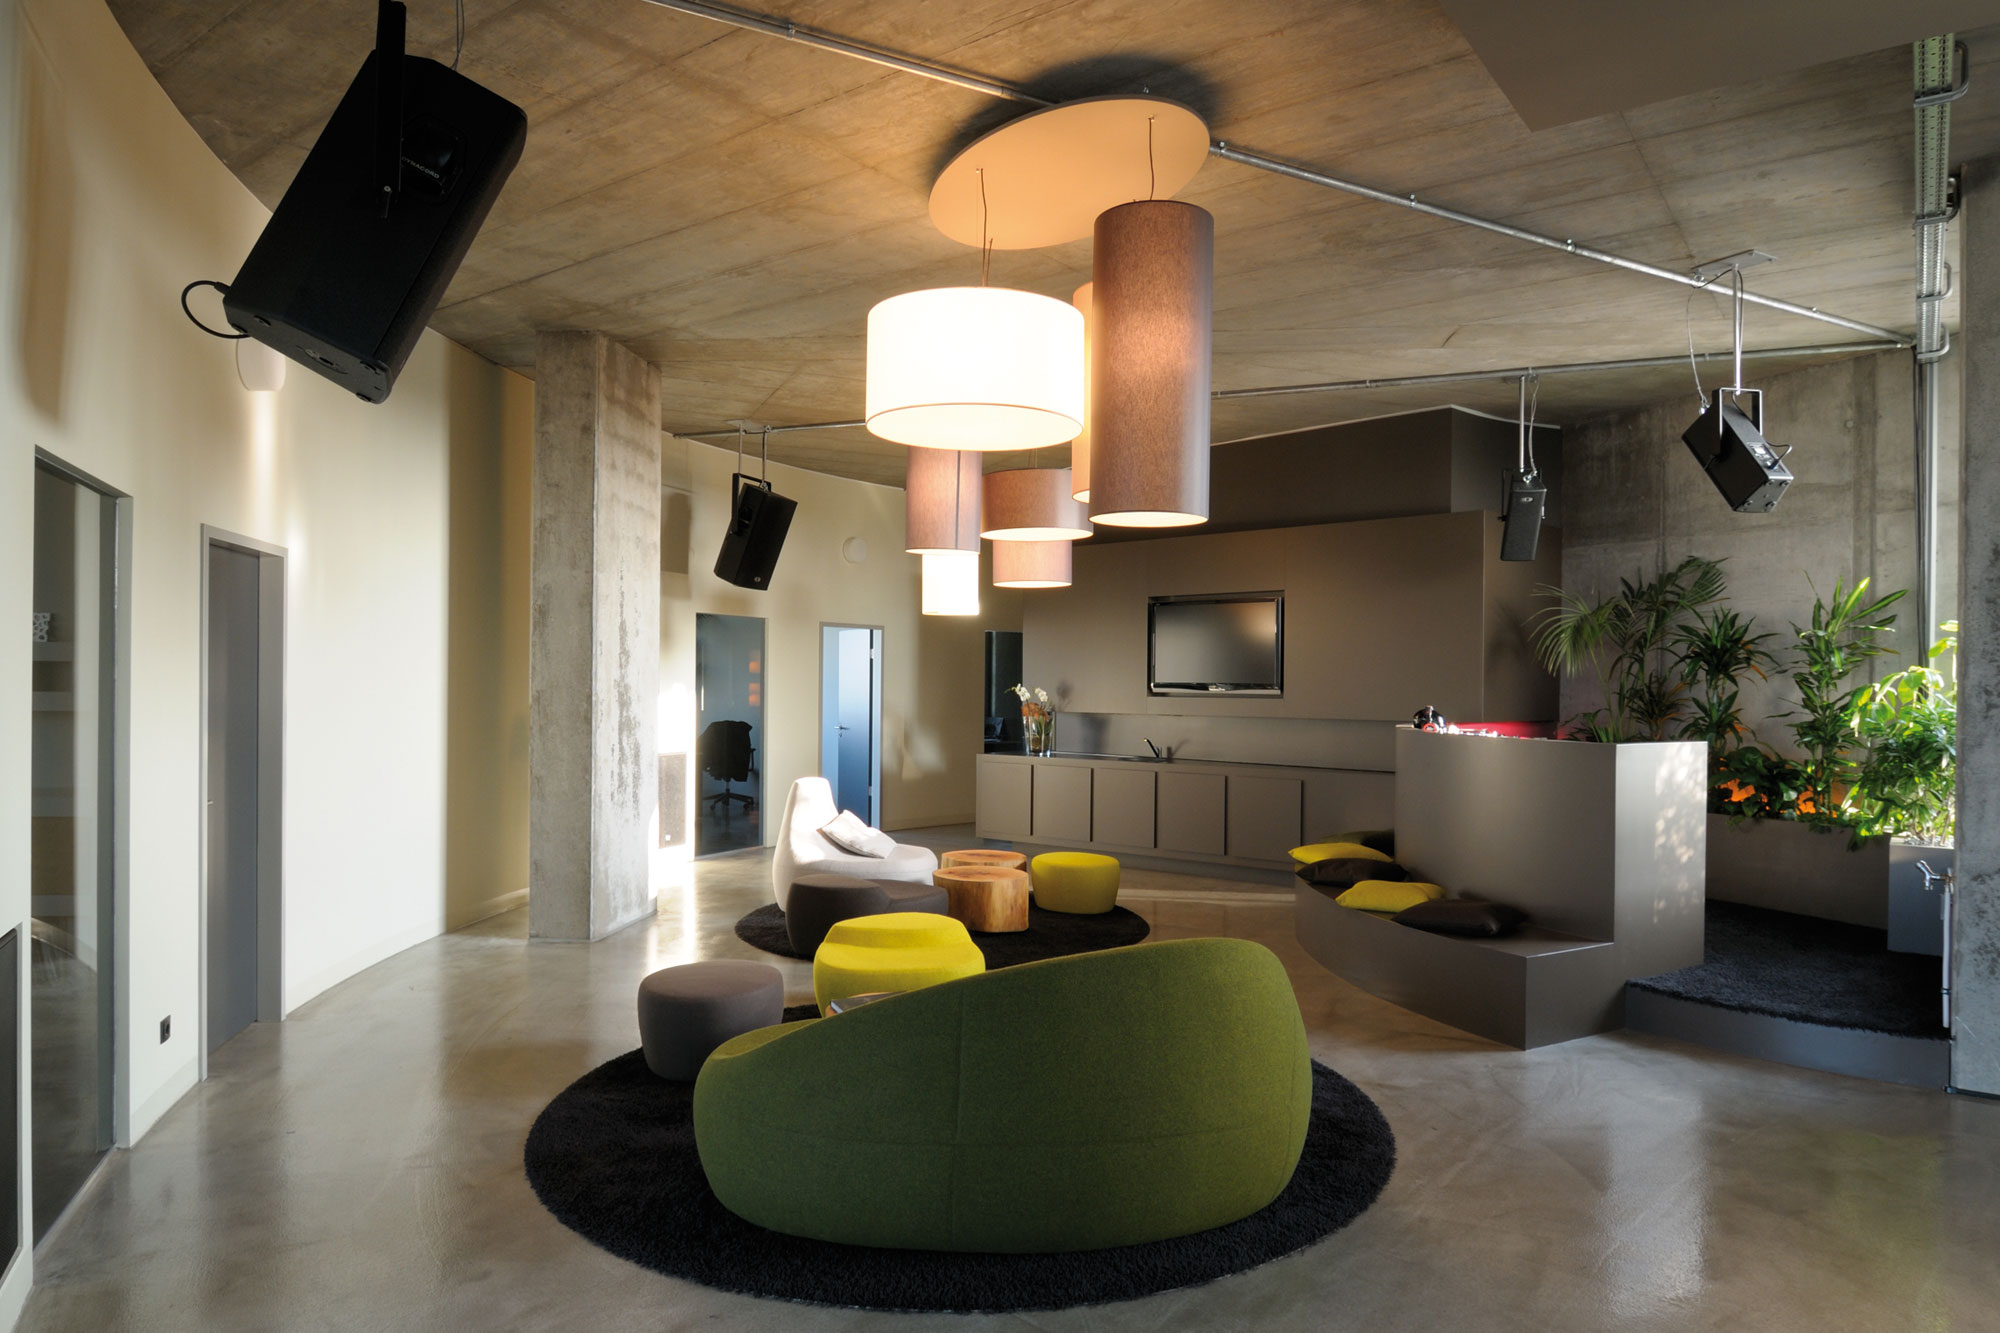 morgen-projects-cocoon-office-2